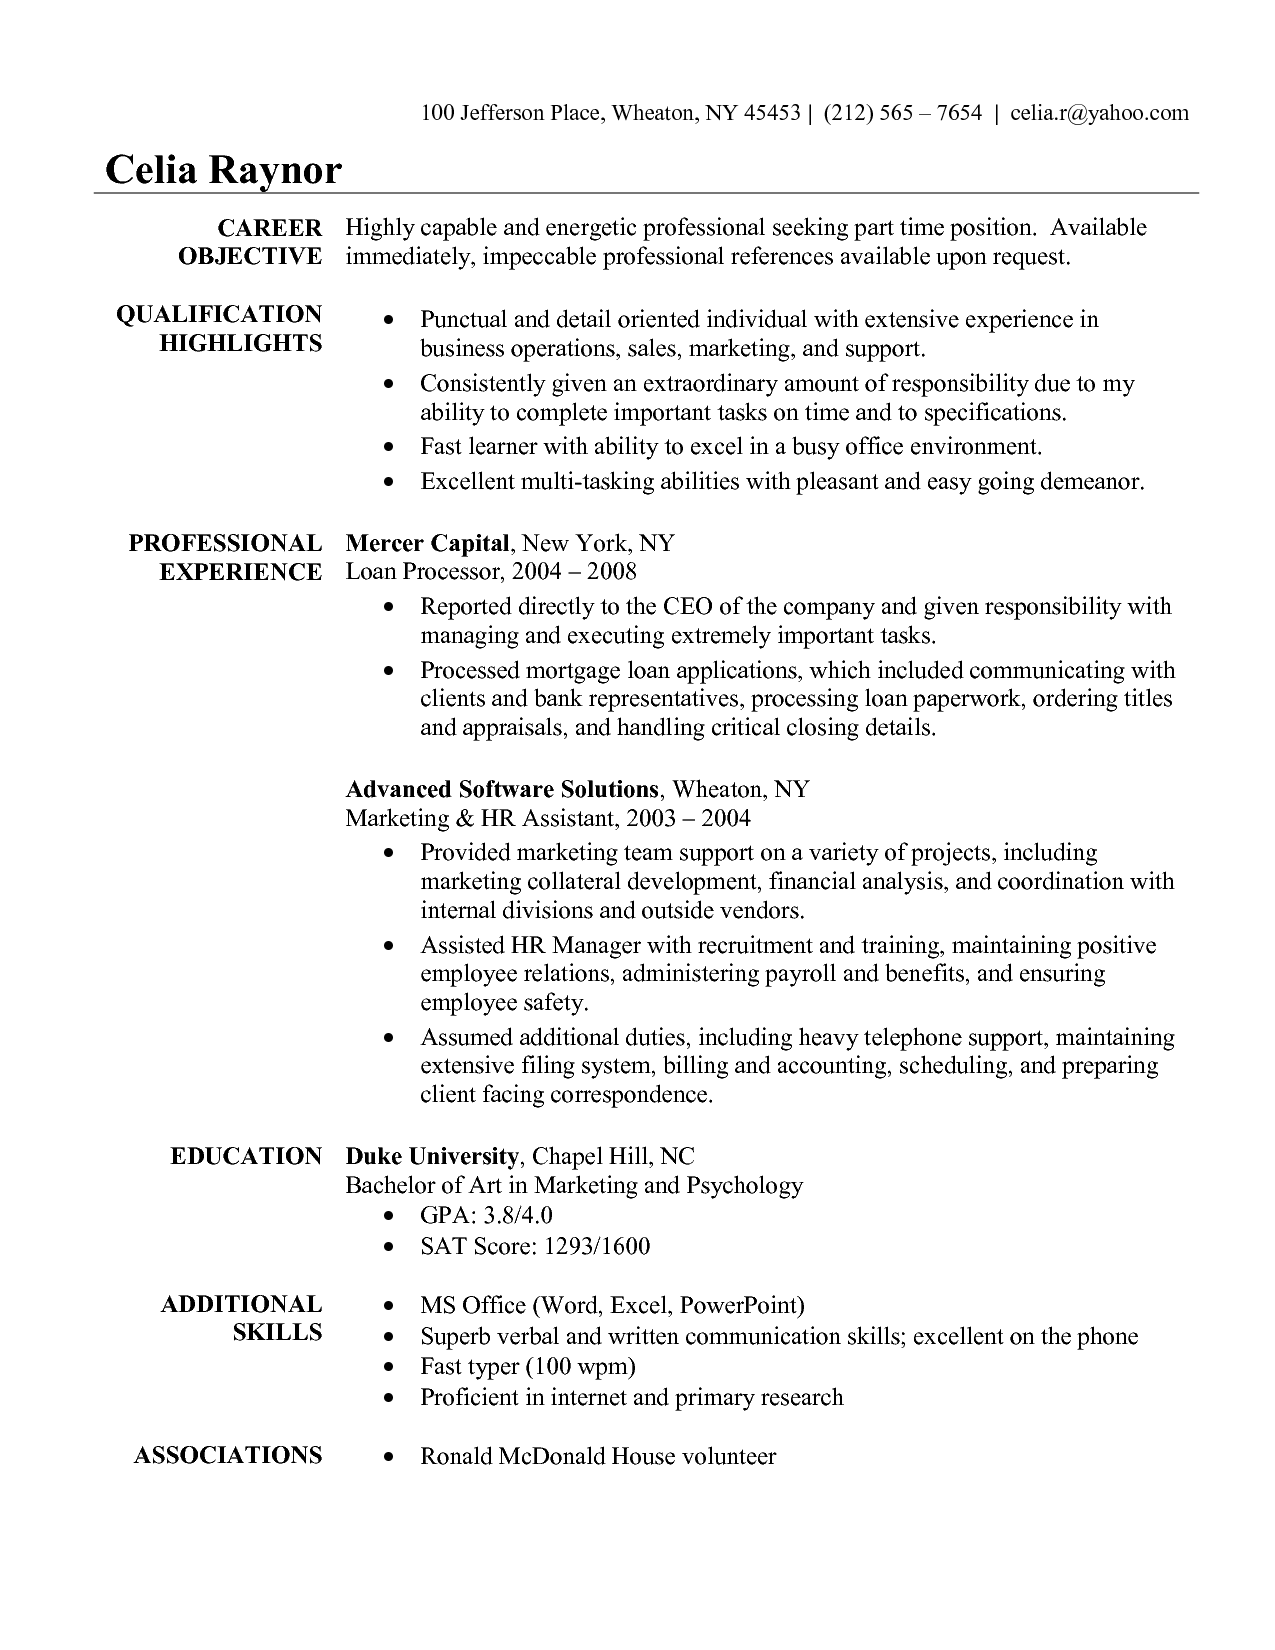 Administrative Assistant Resume Samples Resume Sample For Administrative Assistant Resume Samples For